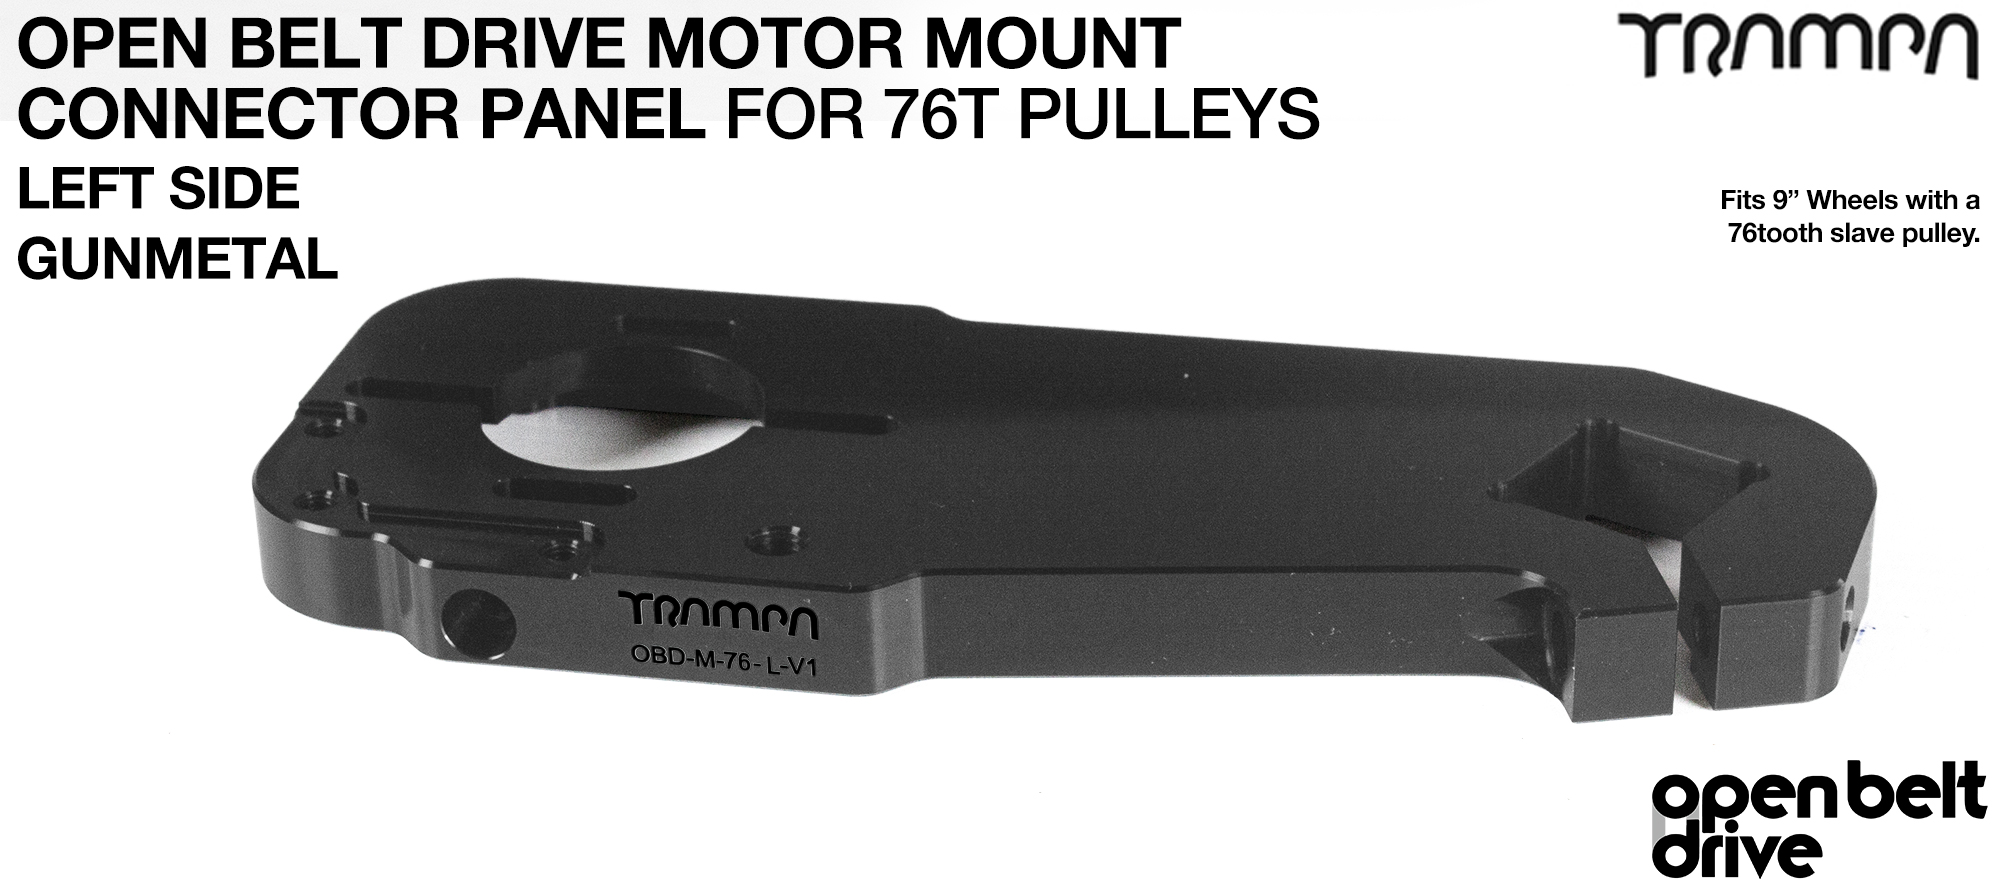 GUNMETAL 76T TWIN OBD Motor Mount Connector Panels